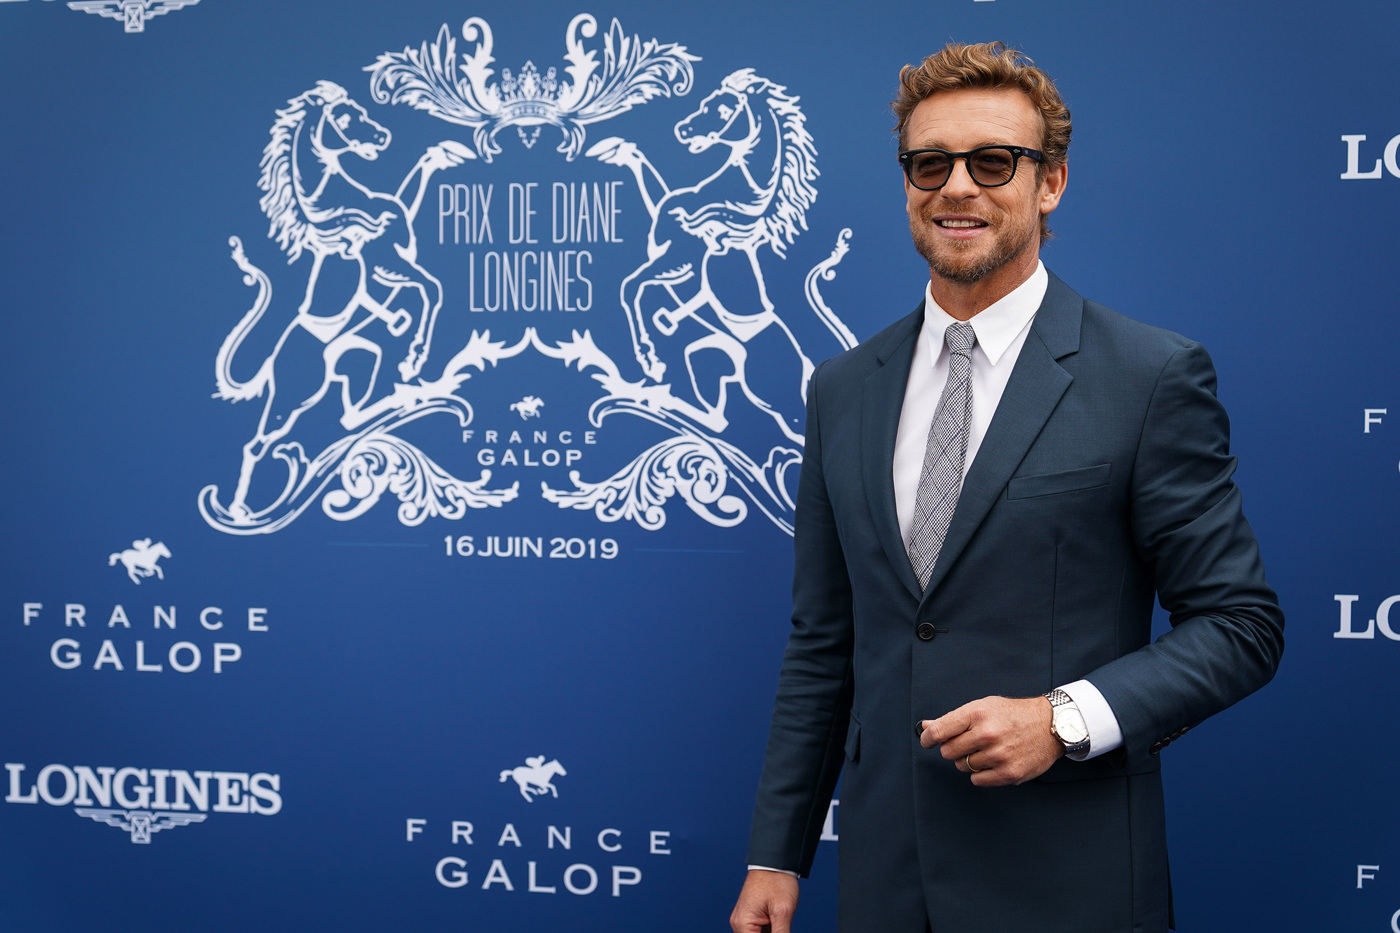 Longines Flat Racing Event: A remarkable 2019 edition of the Prix de Diane Longines in presence of Longines Ambassador of Elegance Simon Baker  3